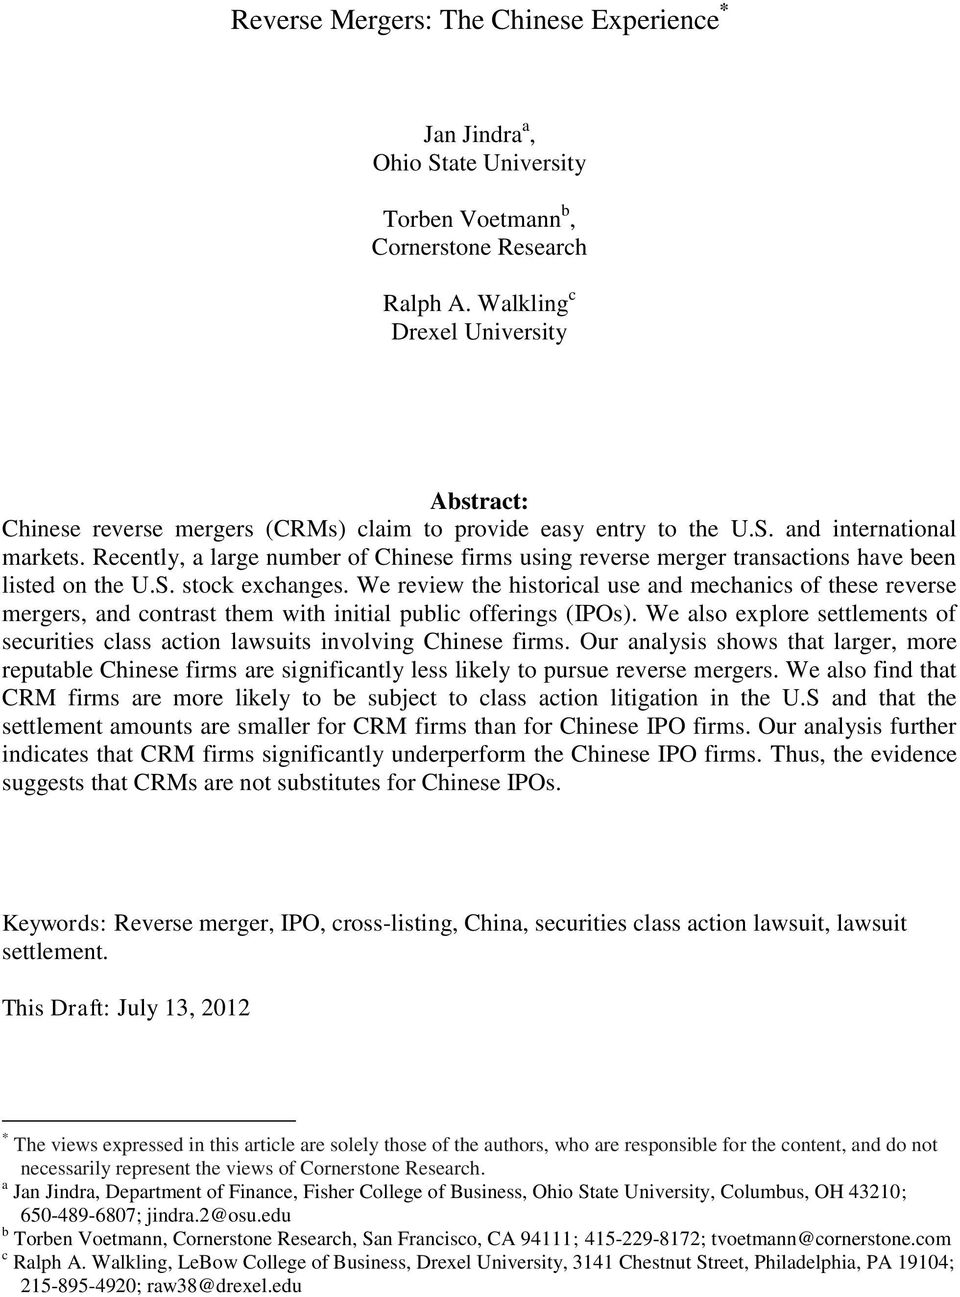 Reverse Mergers: The Chinese Experience - PDF